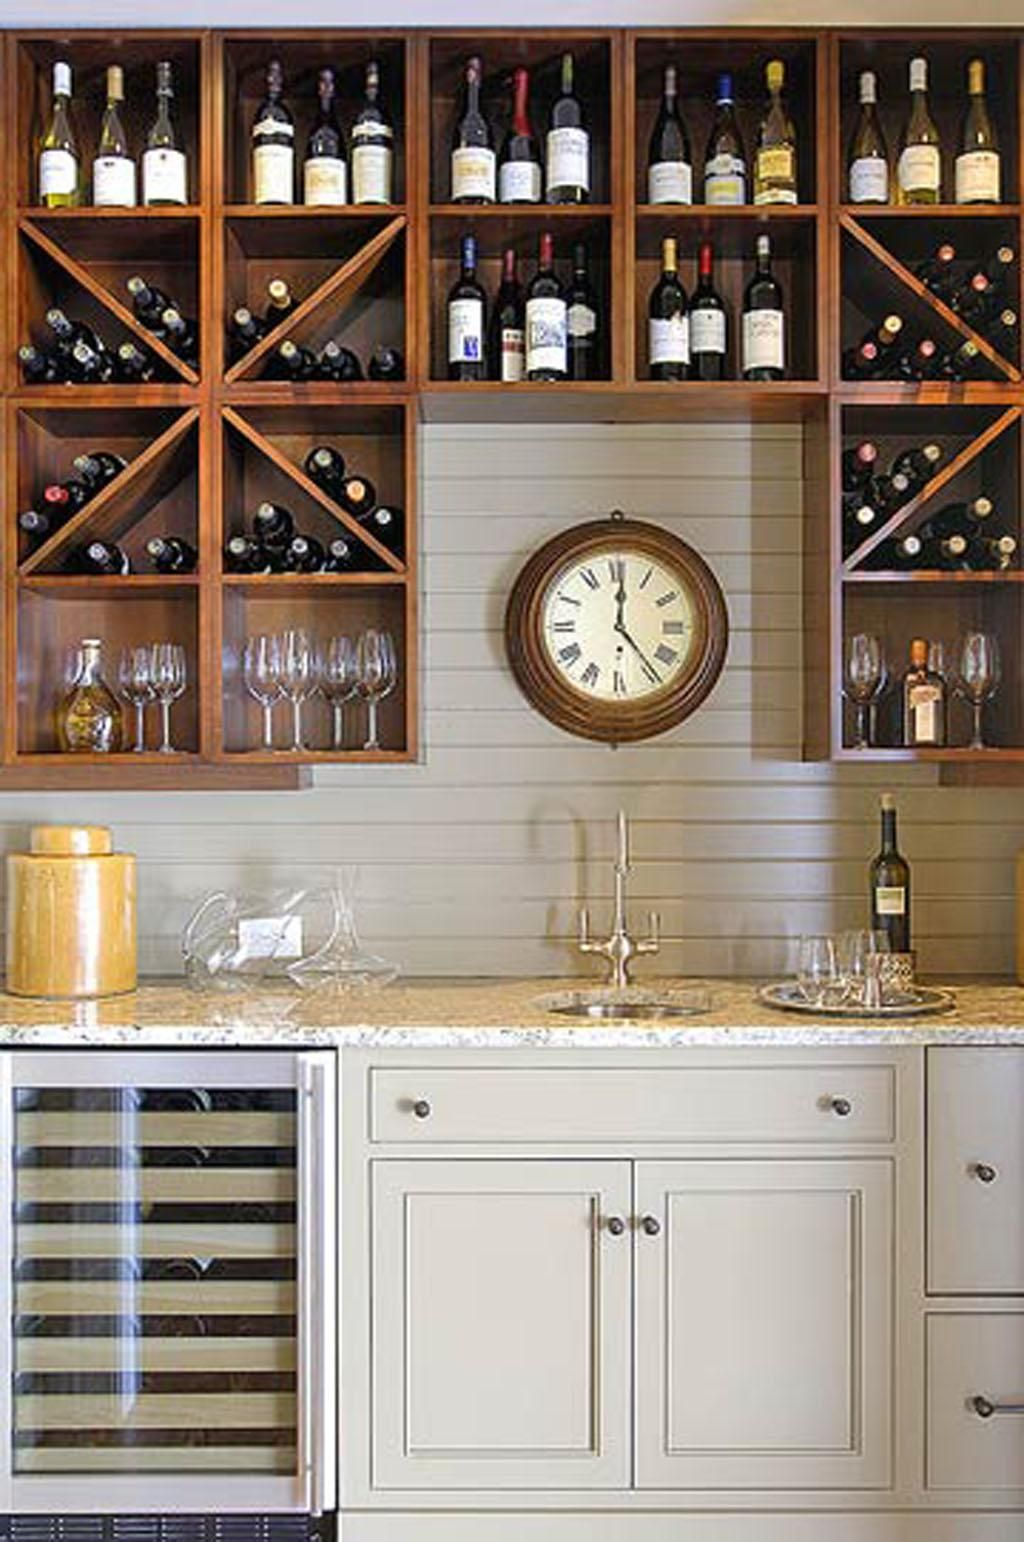 Good Wine Bar Decorating Ideas Home Wet Bar Wine Storage Wine Bar Wine .